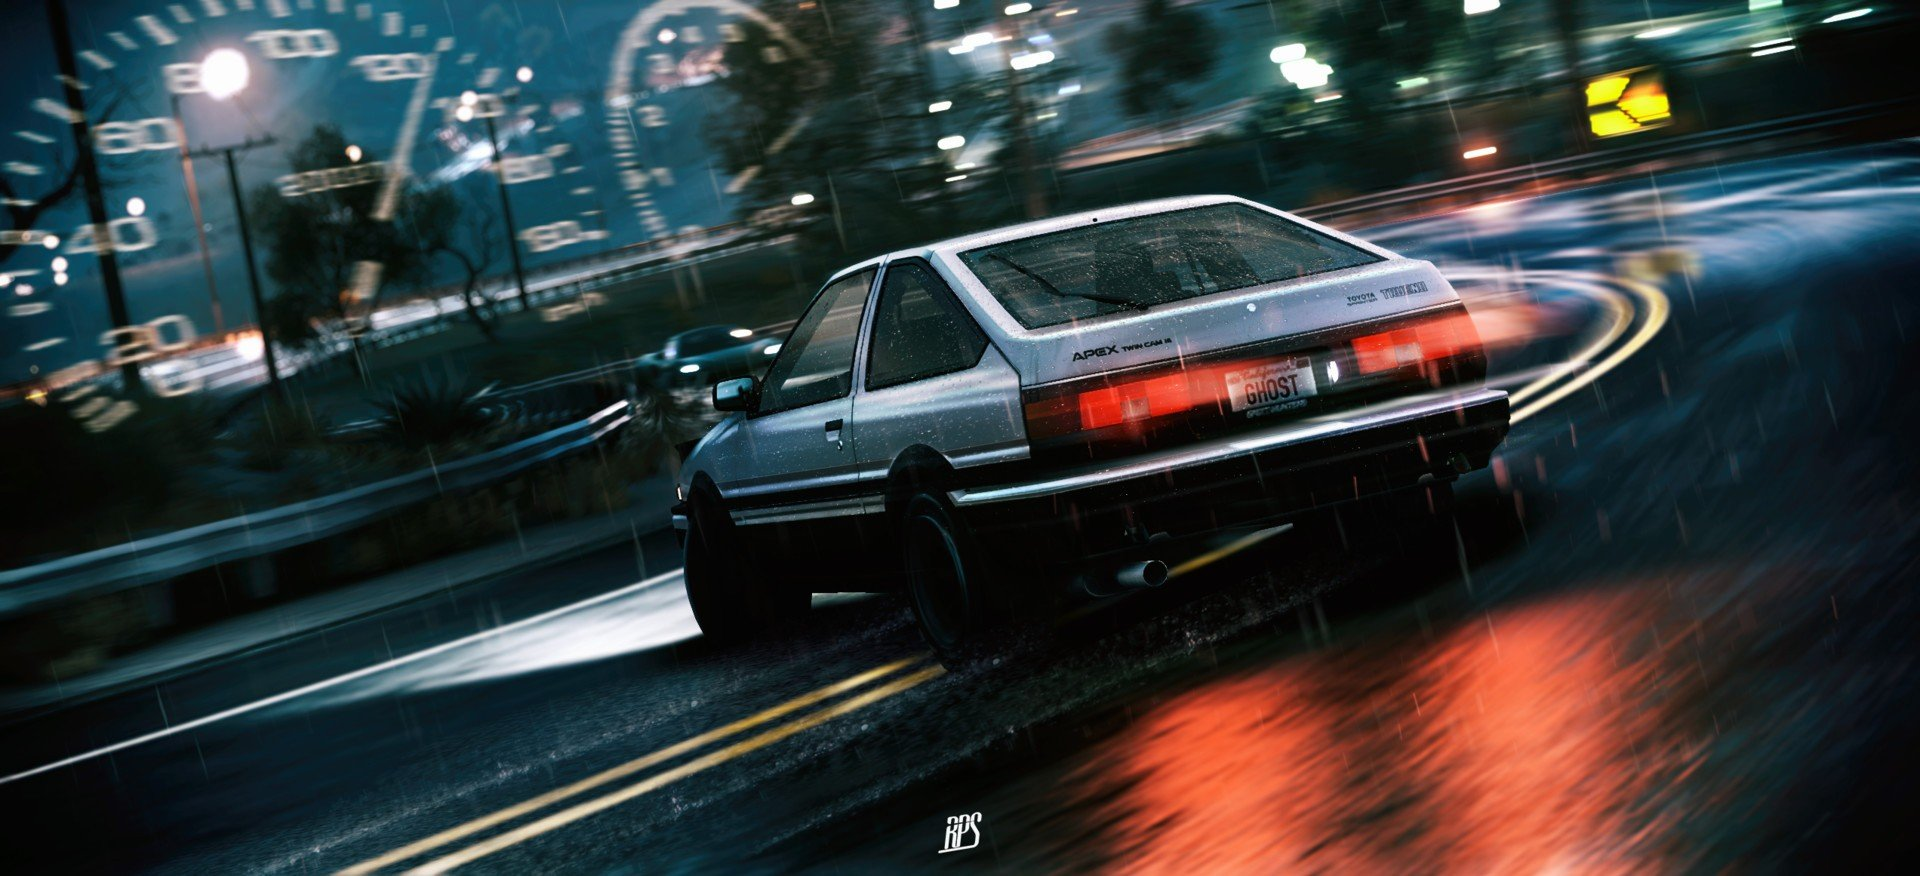 https://hdwallpaperim.com/wp-content/uploads/2017/09/07/460145-car-Initial_D-drift-Toyota_AE86.jpg